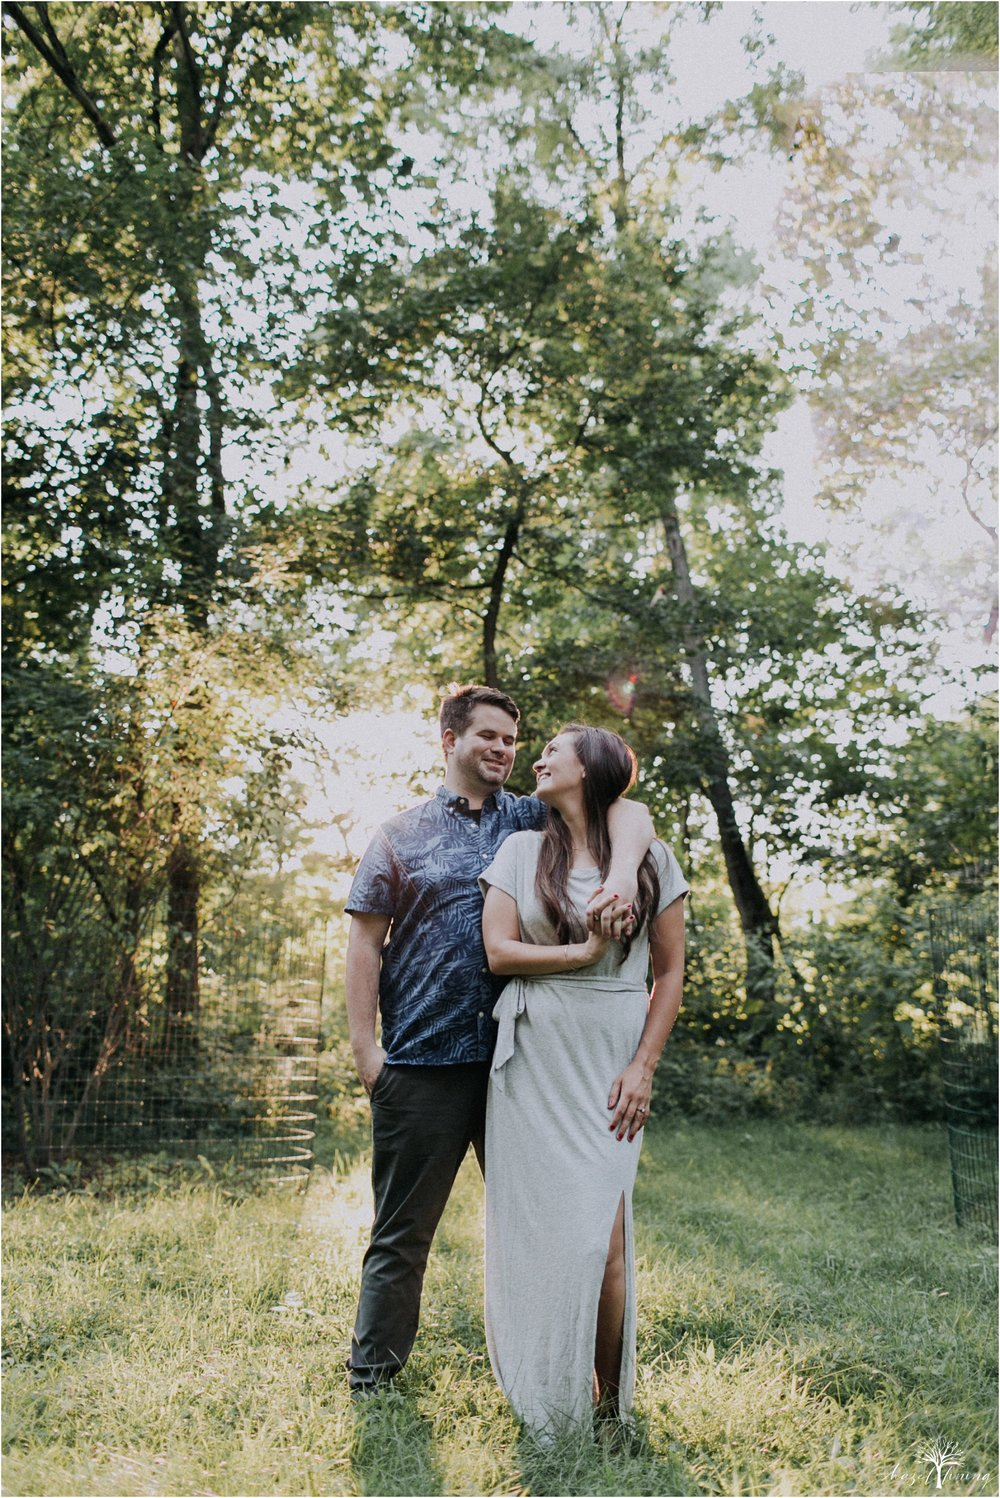 kelsey-delaney-kevin-jordan-tyler-state-park-newtown-pennsylvania-golden-hour-sunset-engagement-session-hazel-lining-travel-wedding-elopement-photography_0077.jpg